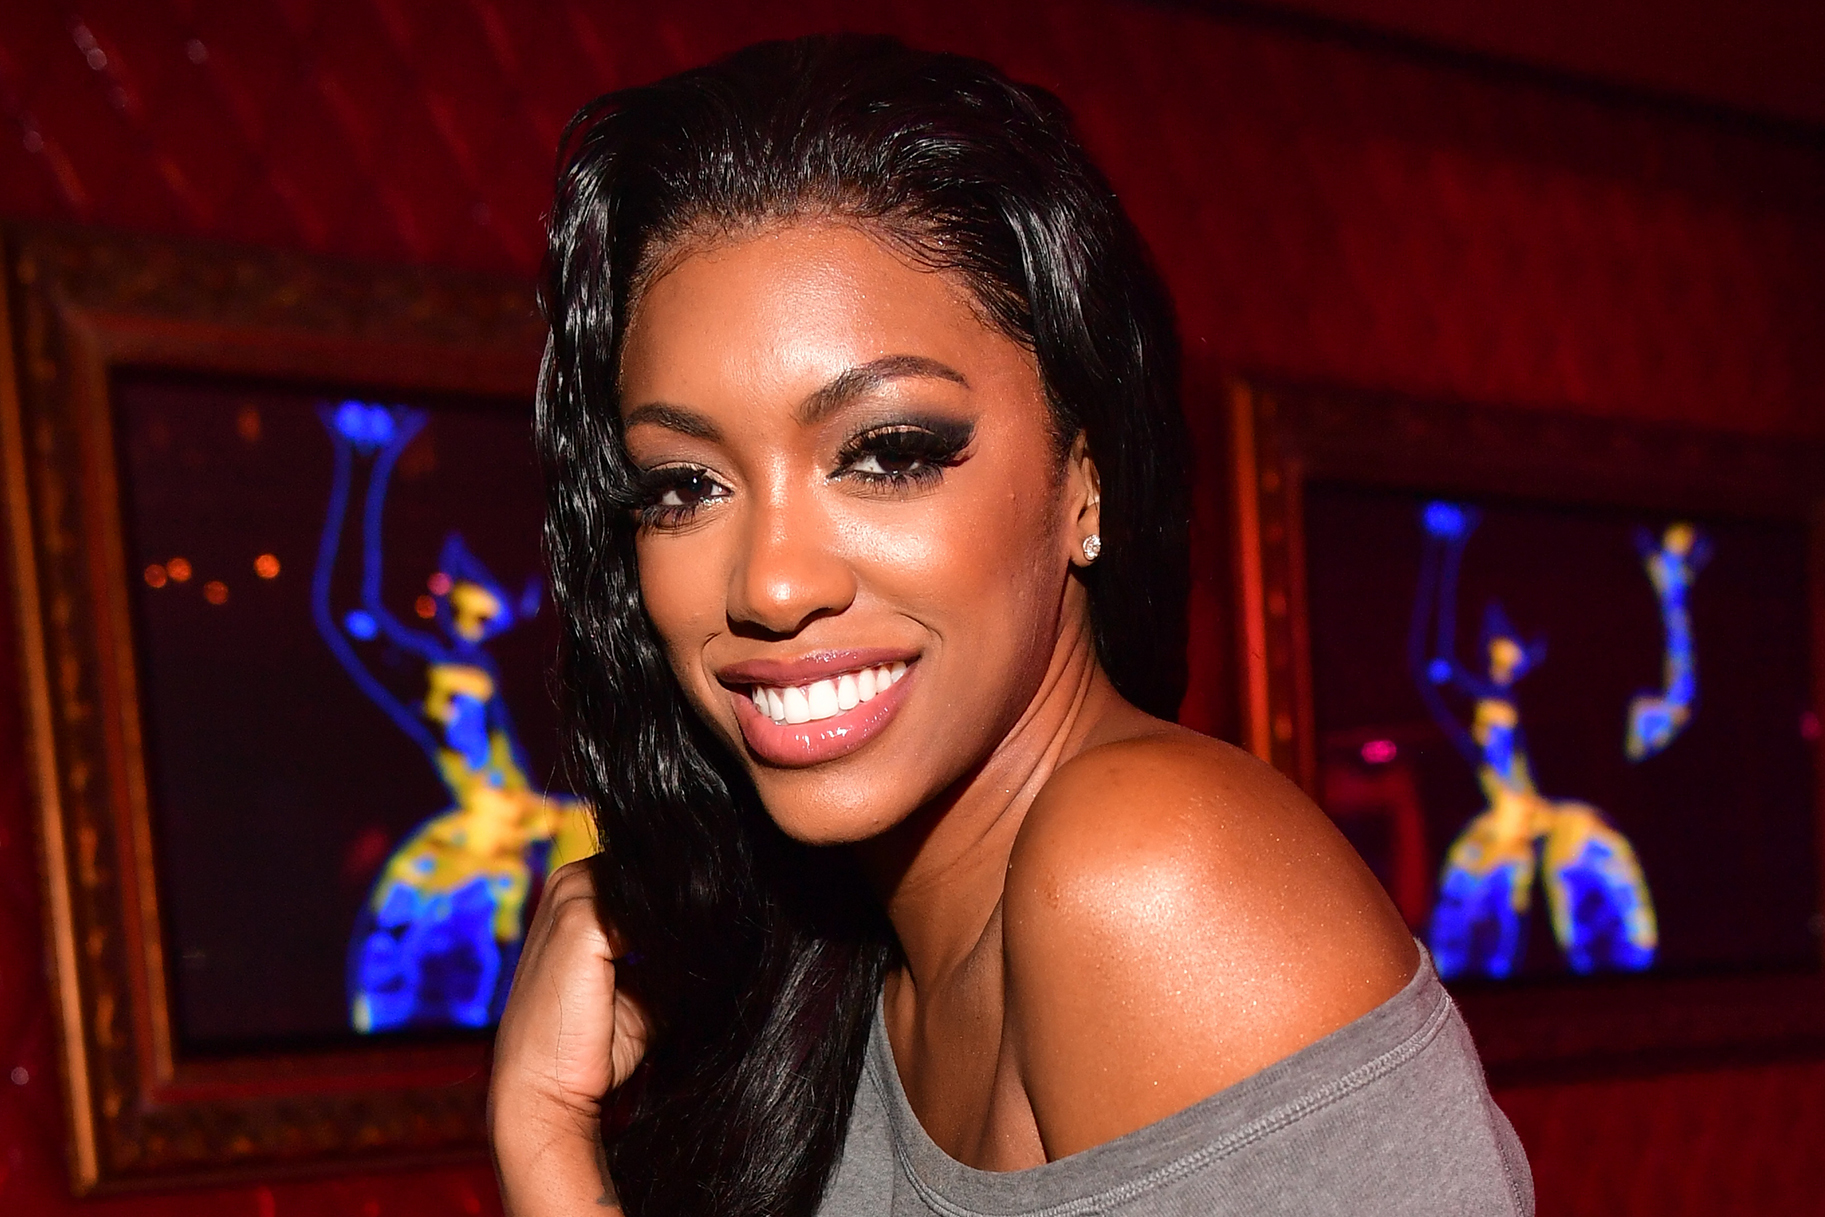 porsha-williams-latest-video-has-fans-laughing-in-the-comments